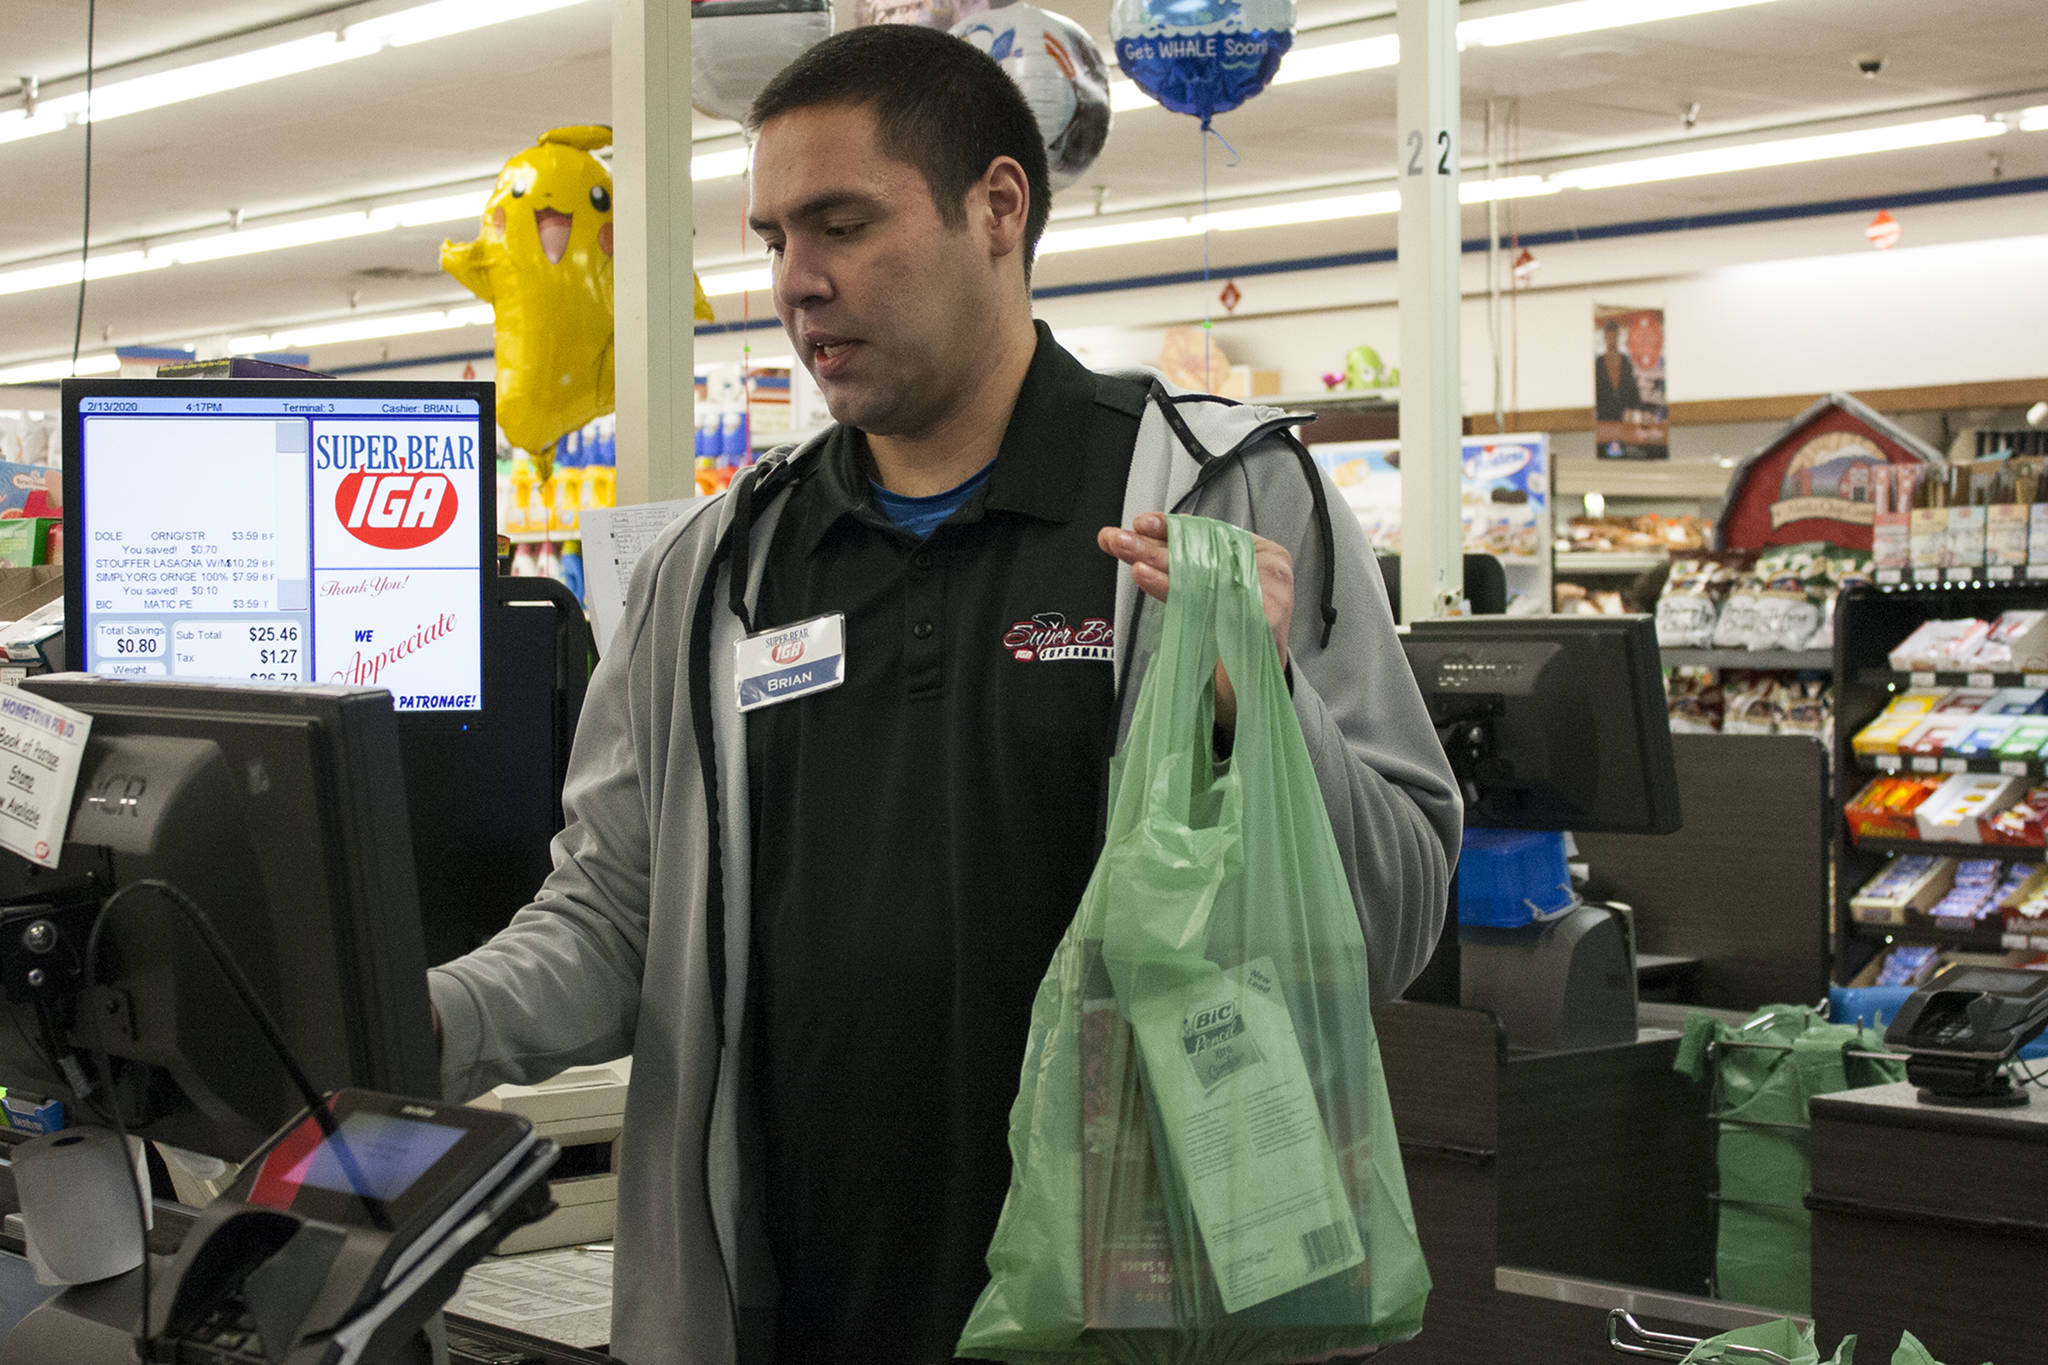 Brian Lauth, closing manager for Super Bear Supermarket IGA, bags groceries Thursday, Feb. 13, 2020. Super Bear will be collecting donations to ship food to Southeast Alaska communities impacted by a lack of ferry service. (Ben Hohenstatt | Juneau Empire)